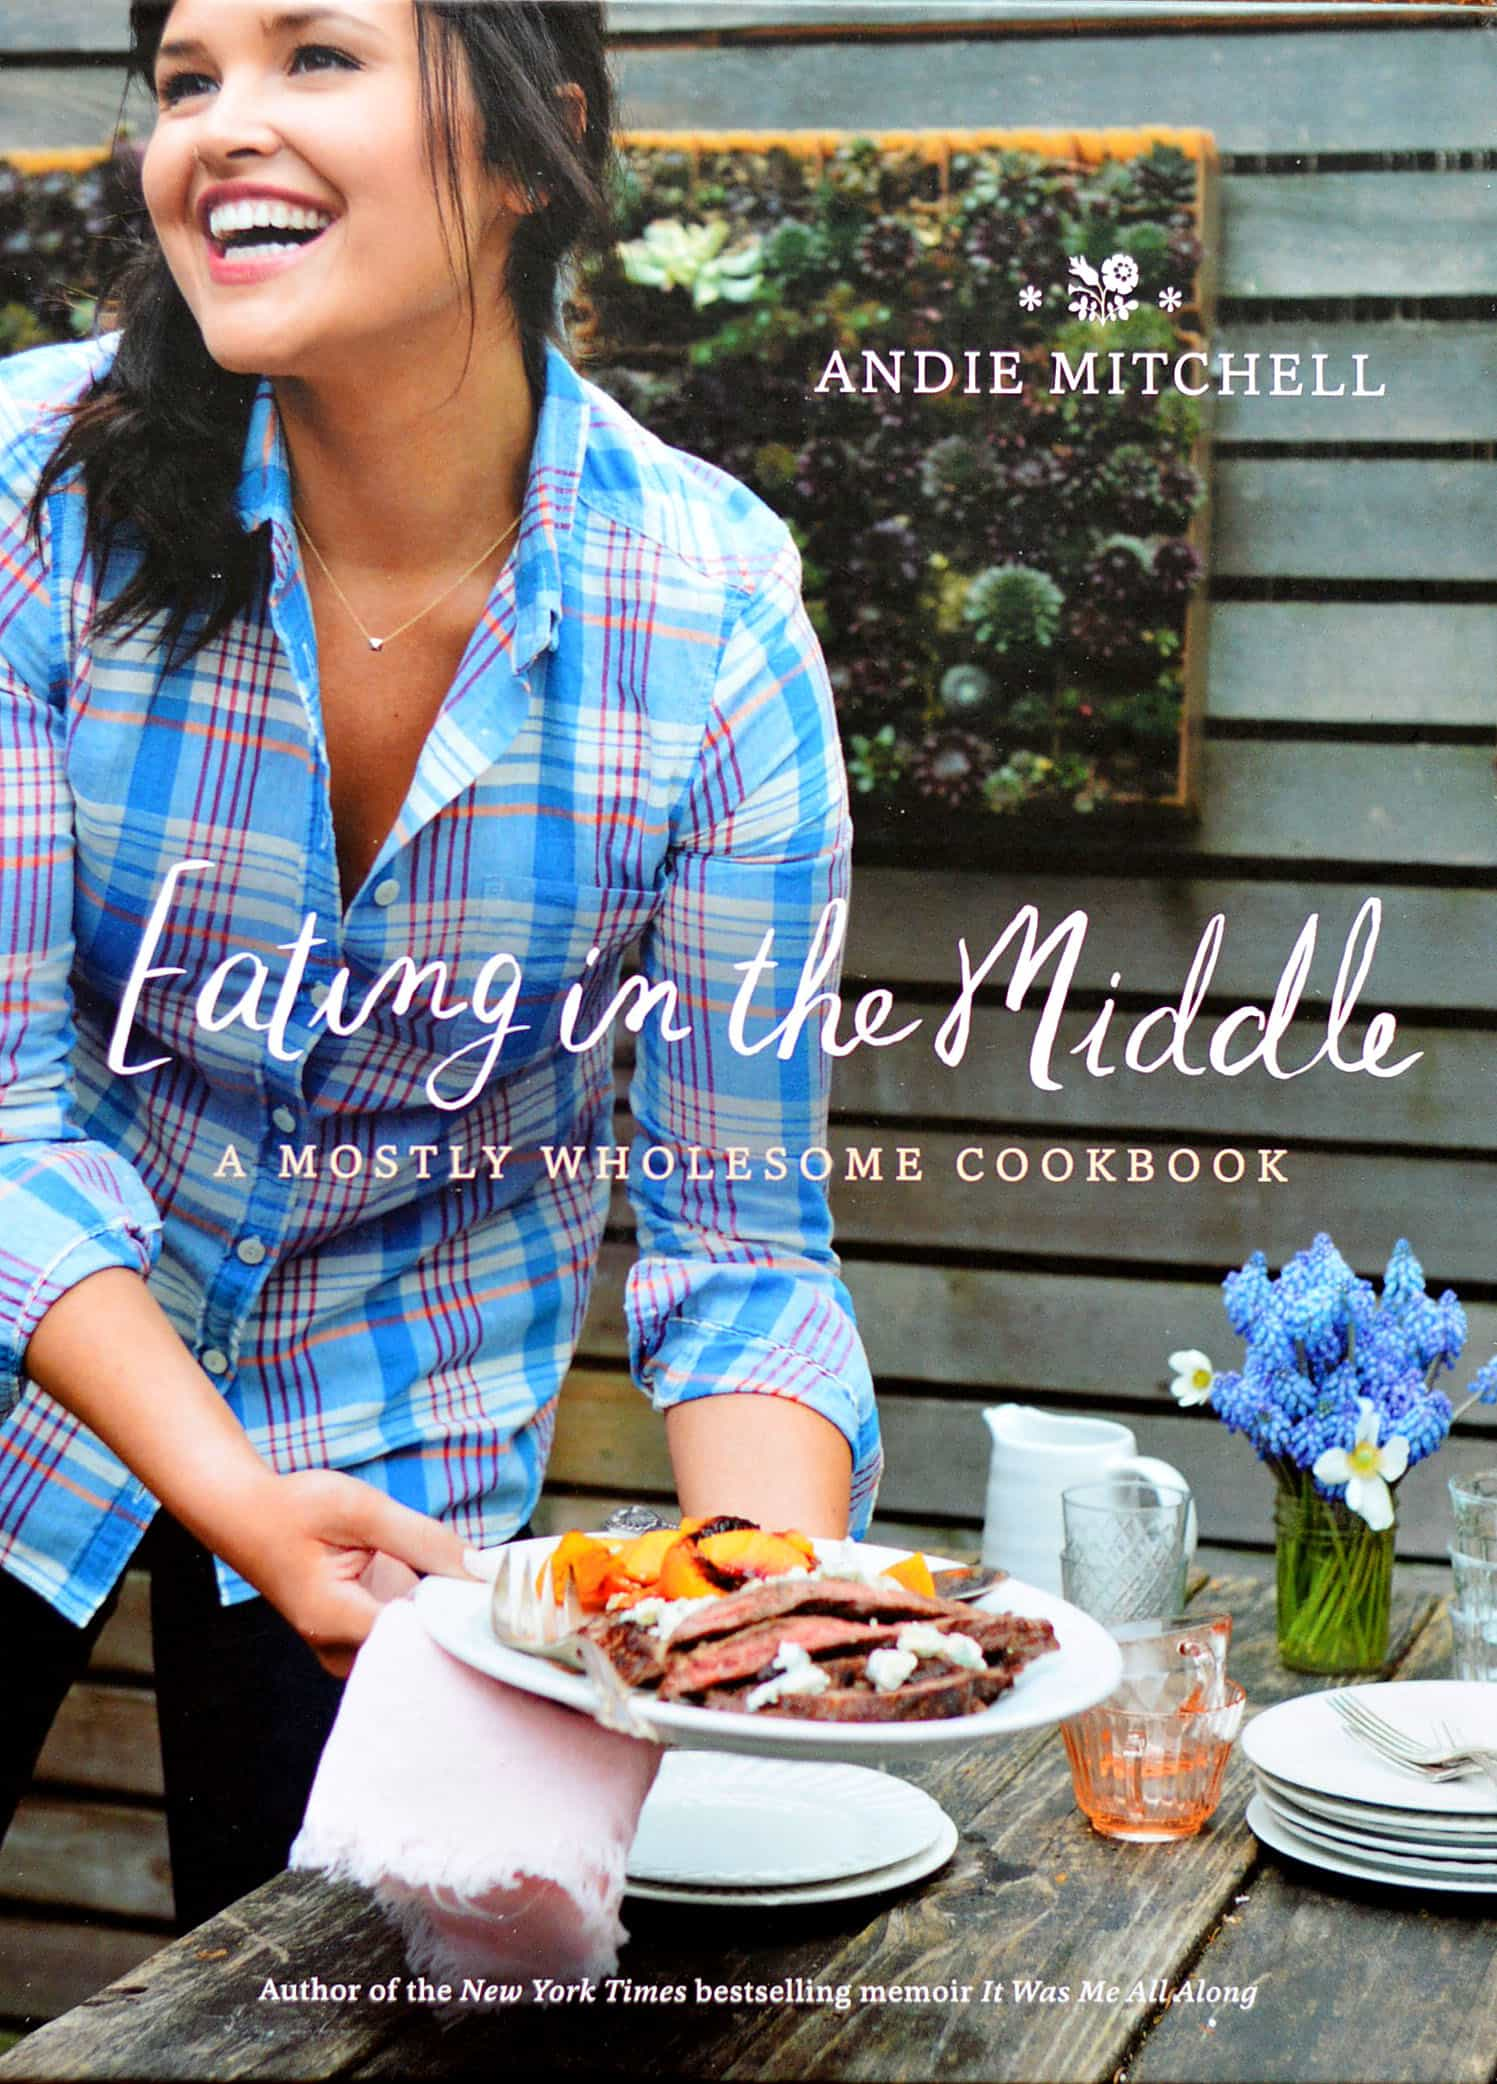 REVIEW: EATING IN THE MIDDLE, a cookbook by Andie Mitchell